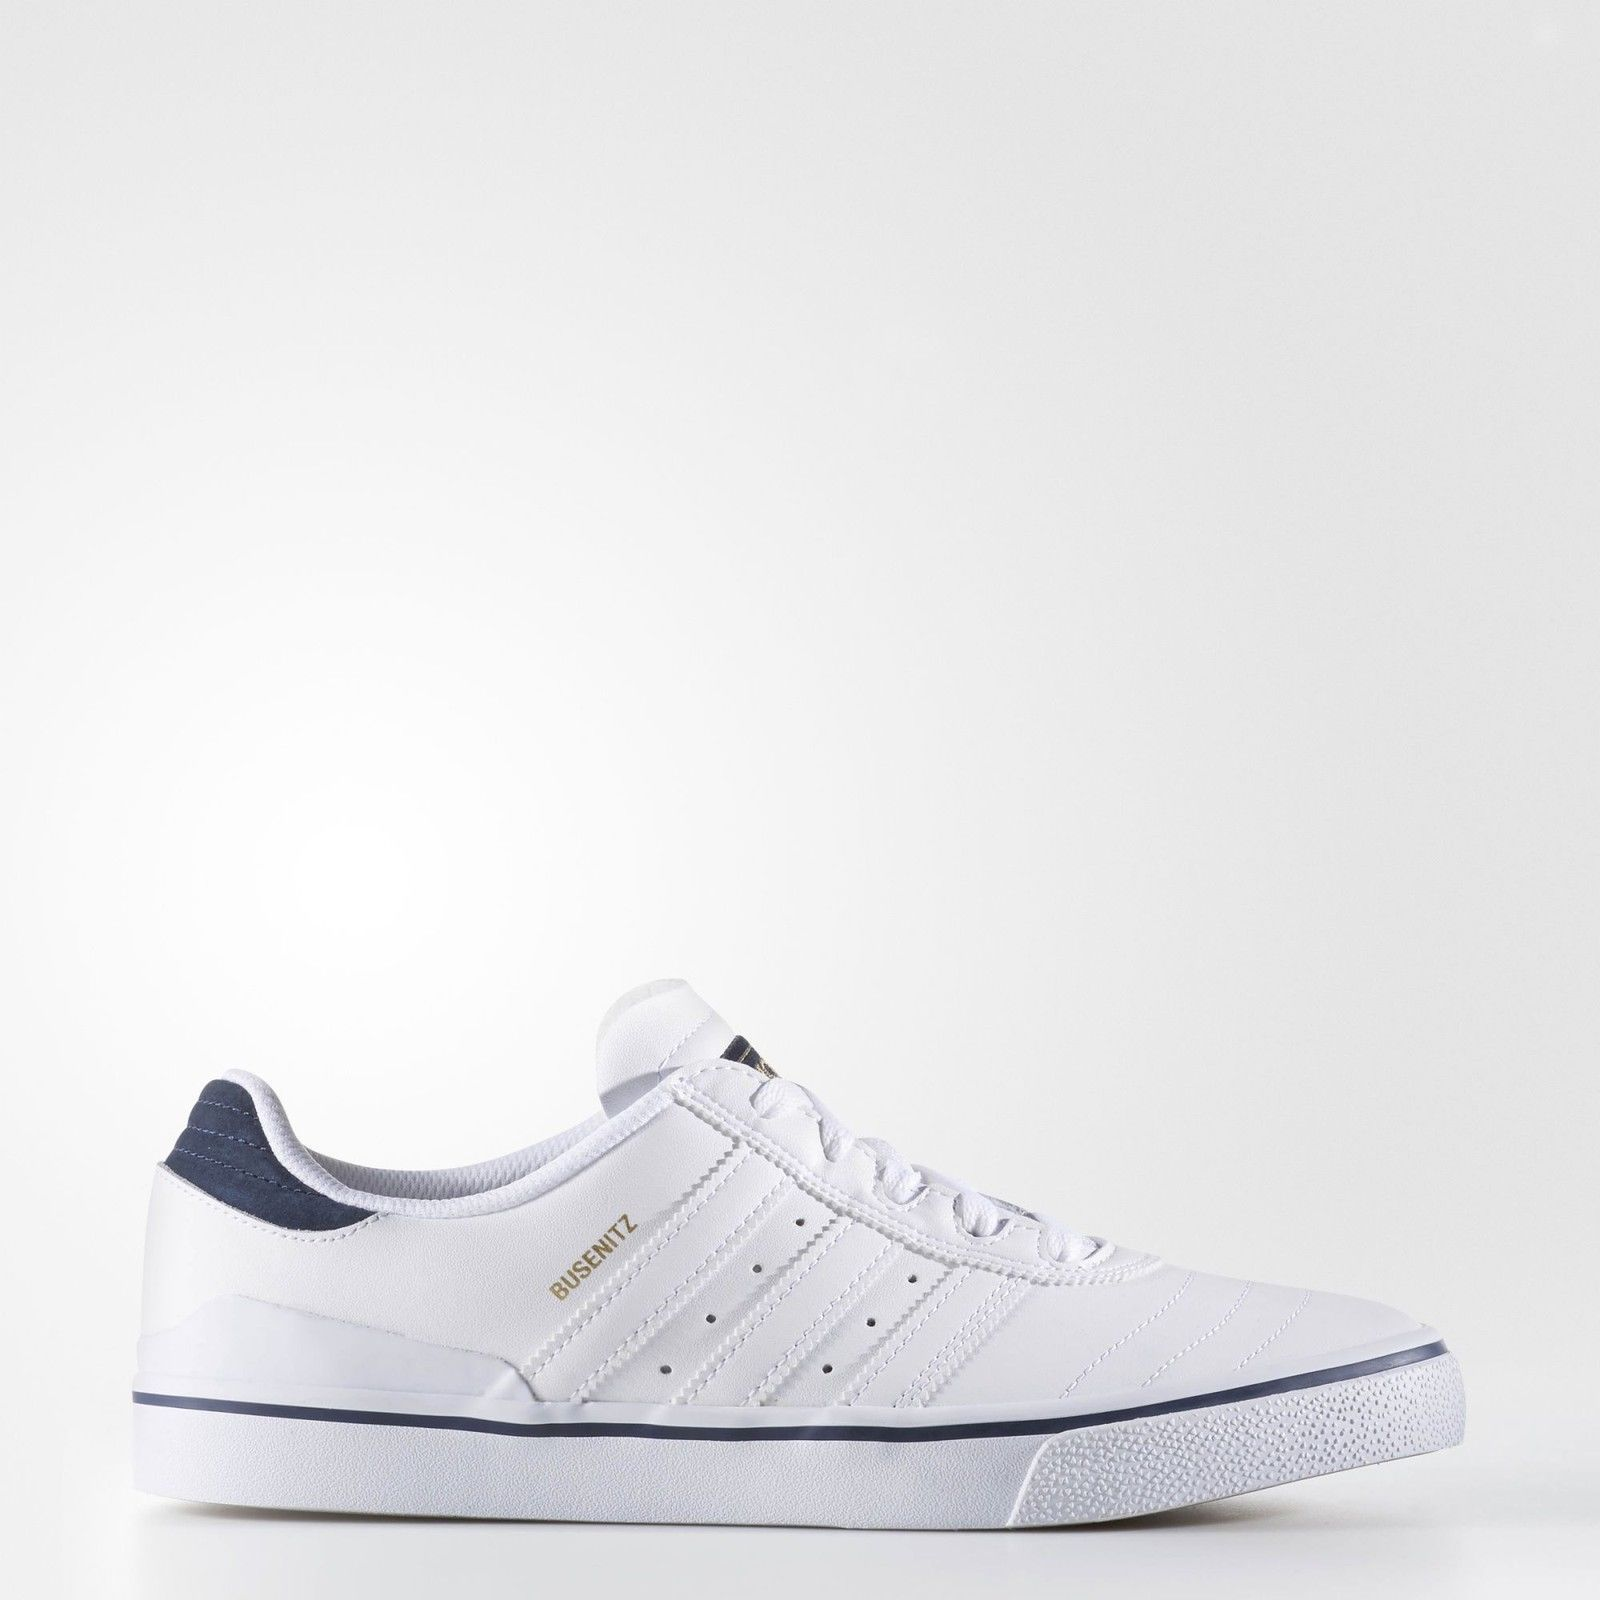 cheaper b6a70 6f216 adidas Originals Mens Busenitz Vulc Fashion Sneaker White BB8445